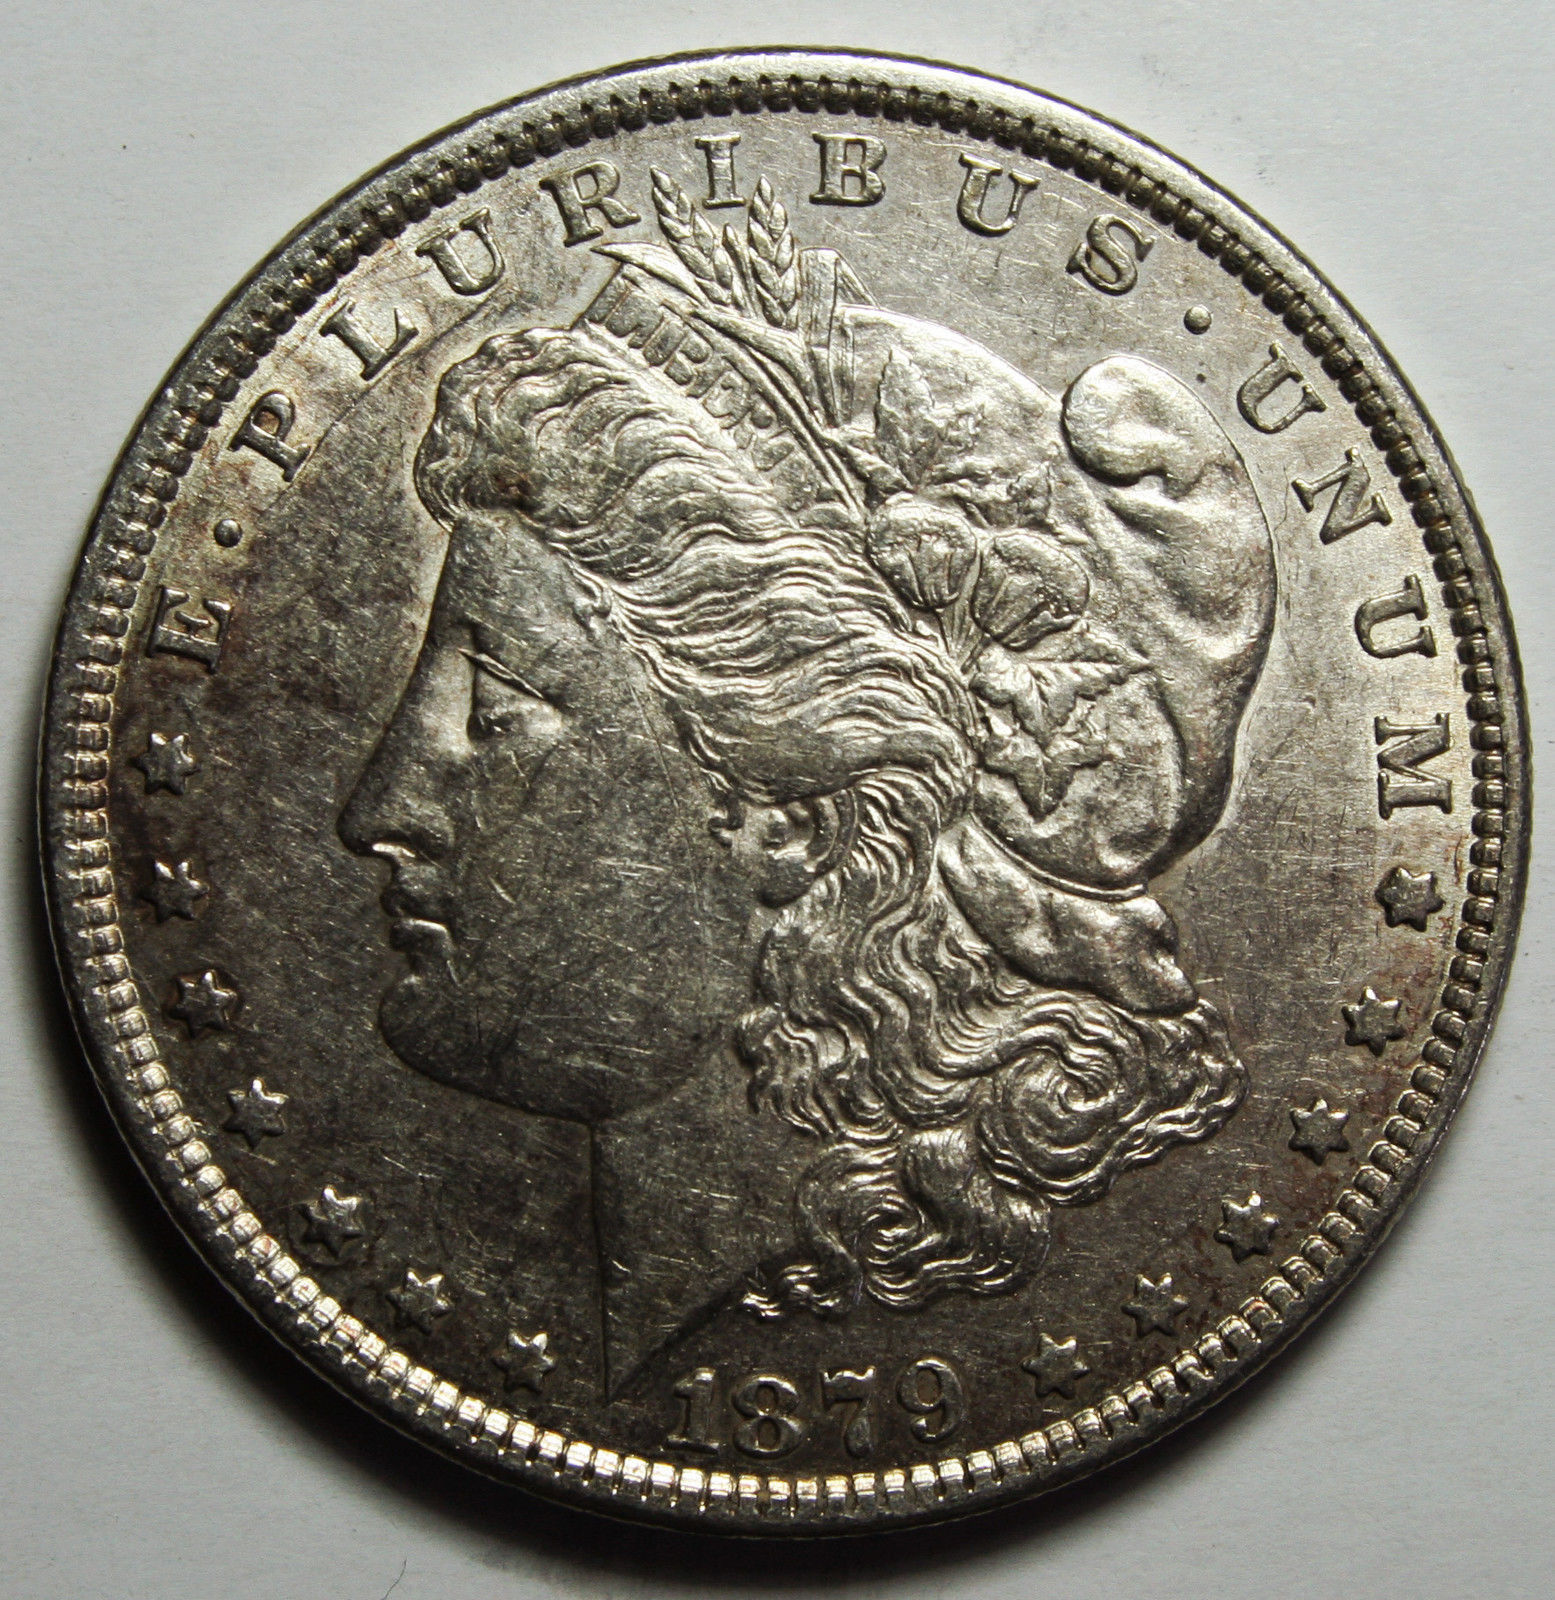 1879 MORGAN SILVER DOLLAR COIN Lot# D 4